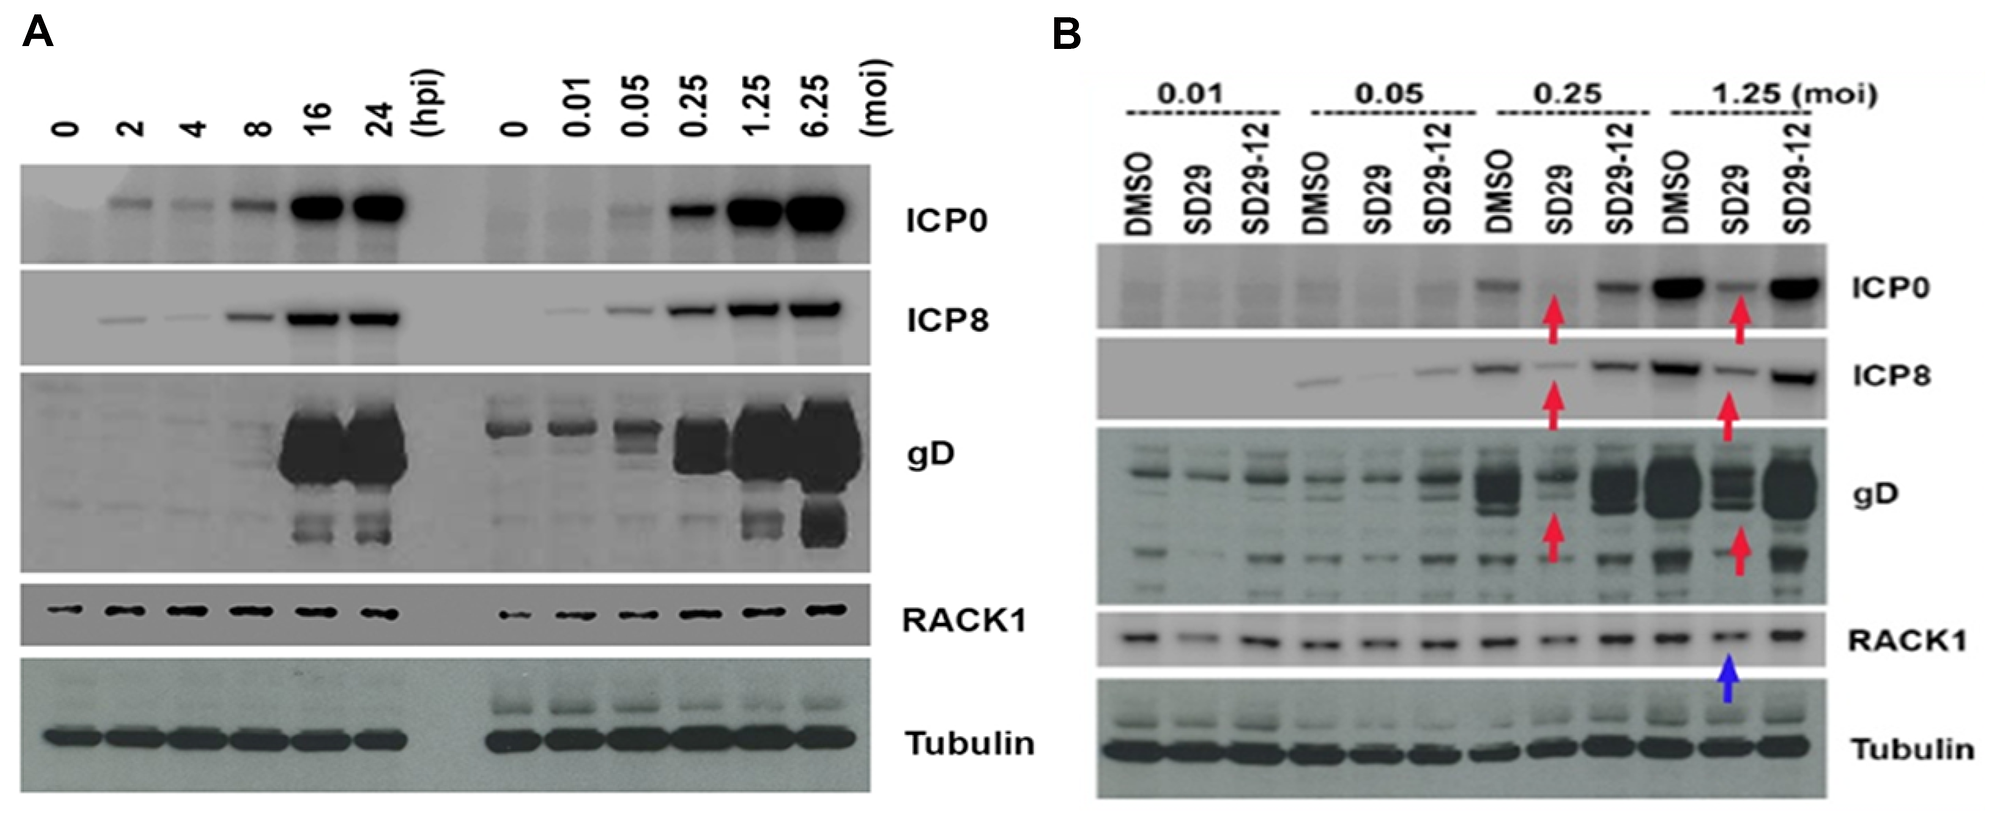 Effects of the compounds on HSV-1 protein expression.